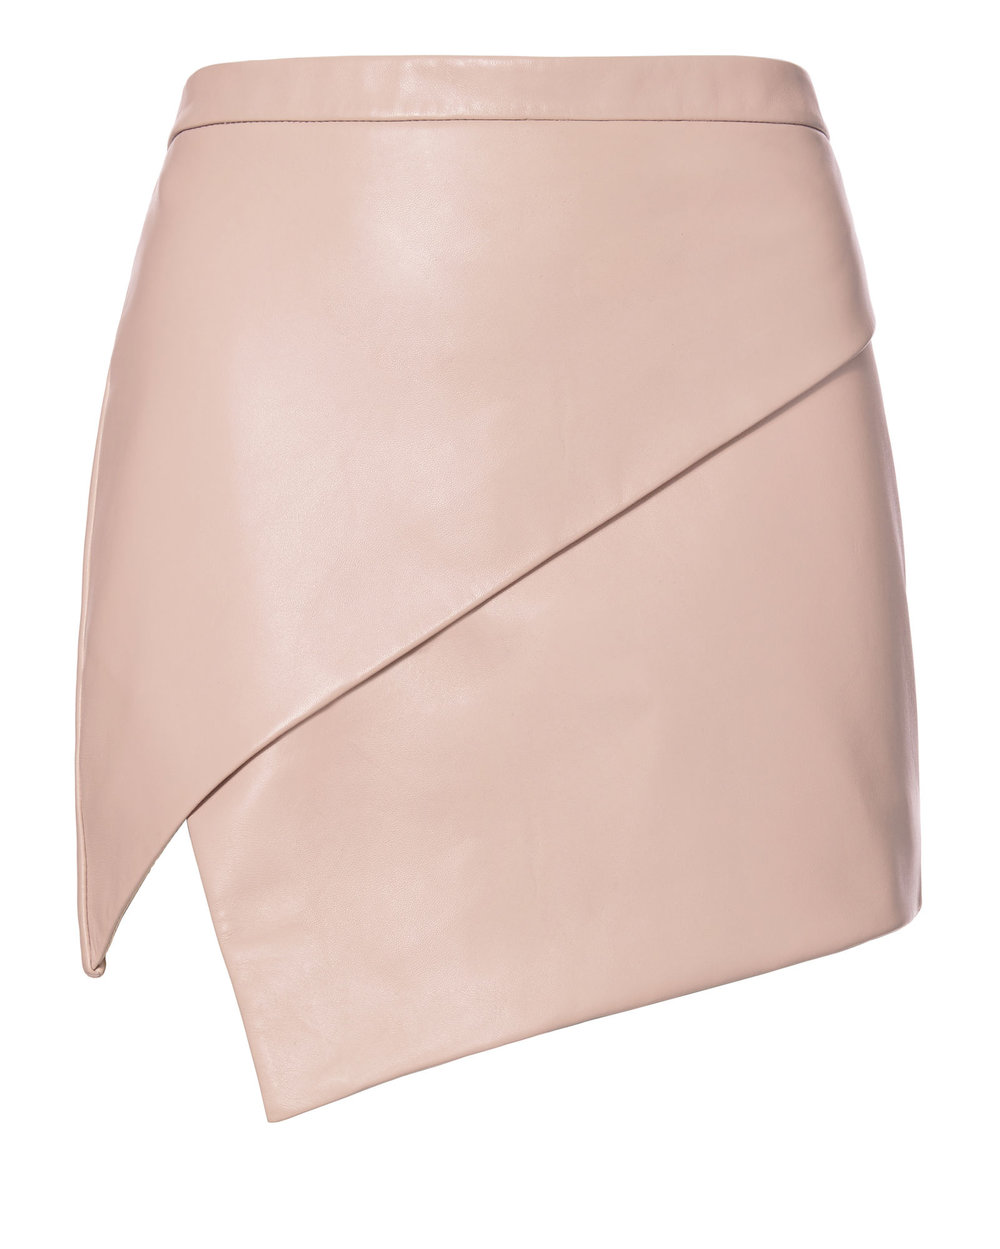 blush leather asymmetric mini skirt